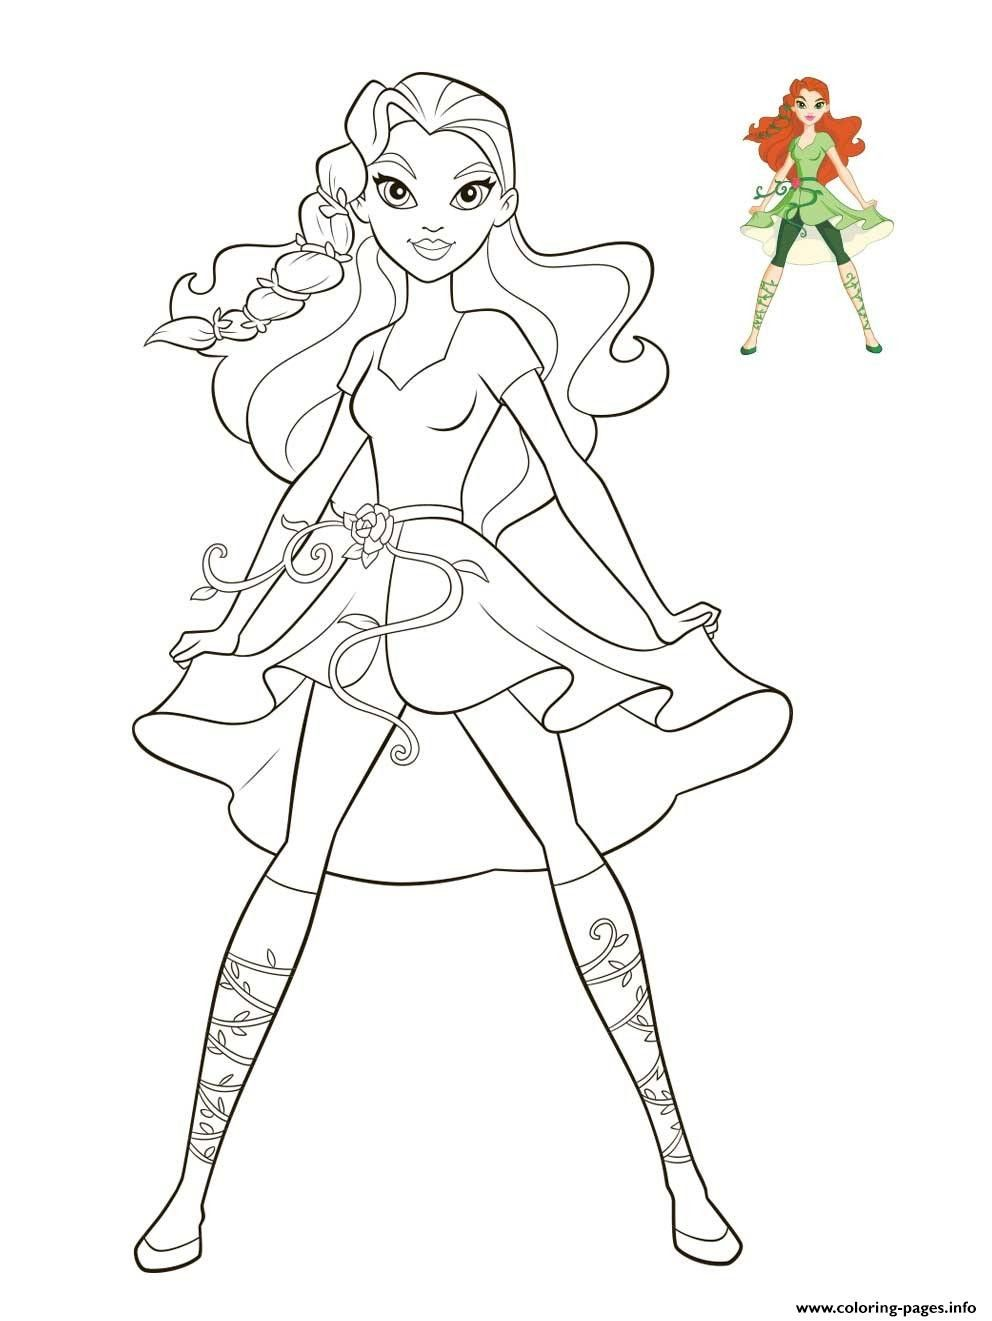 The Best Dc Superhero Girls Coloring Pages Superhero Coloring